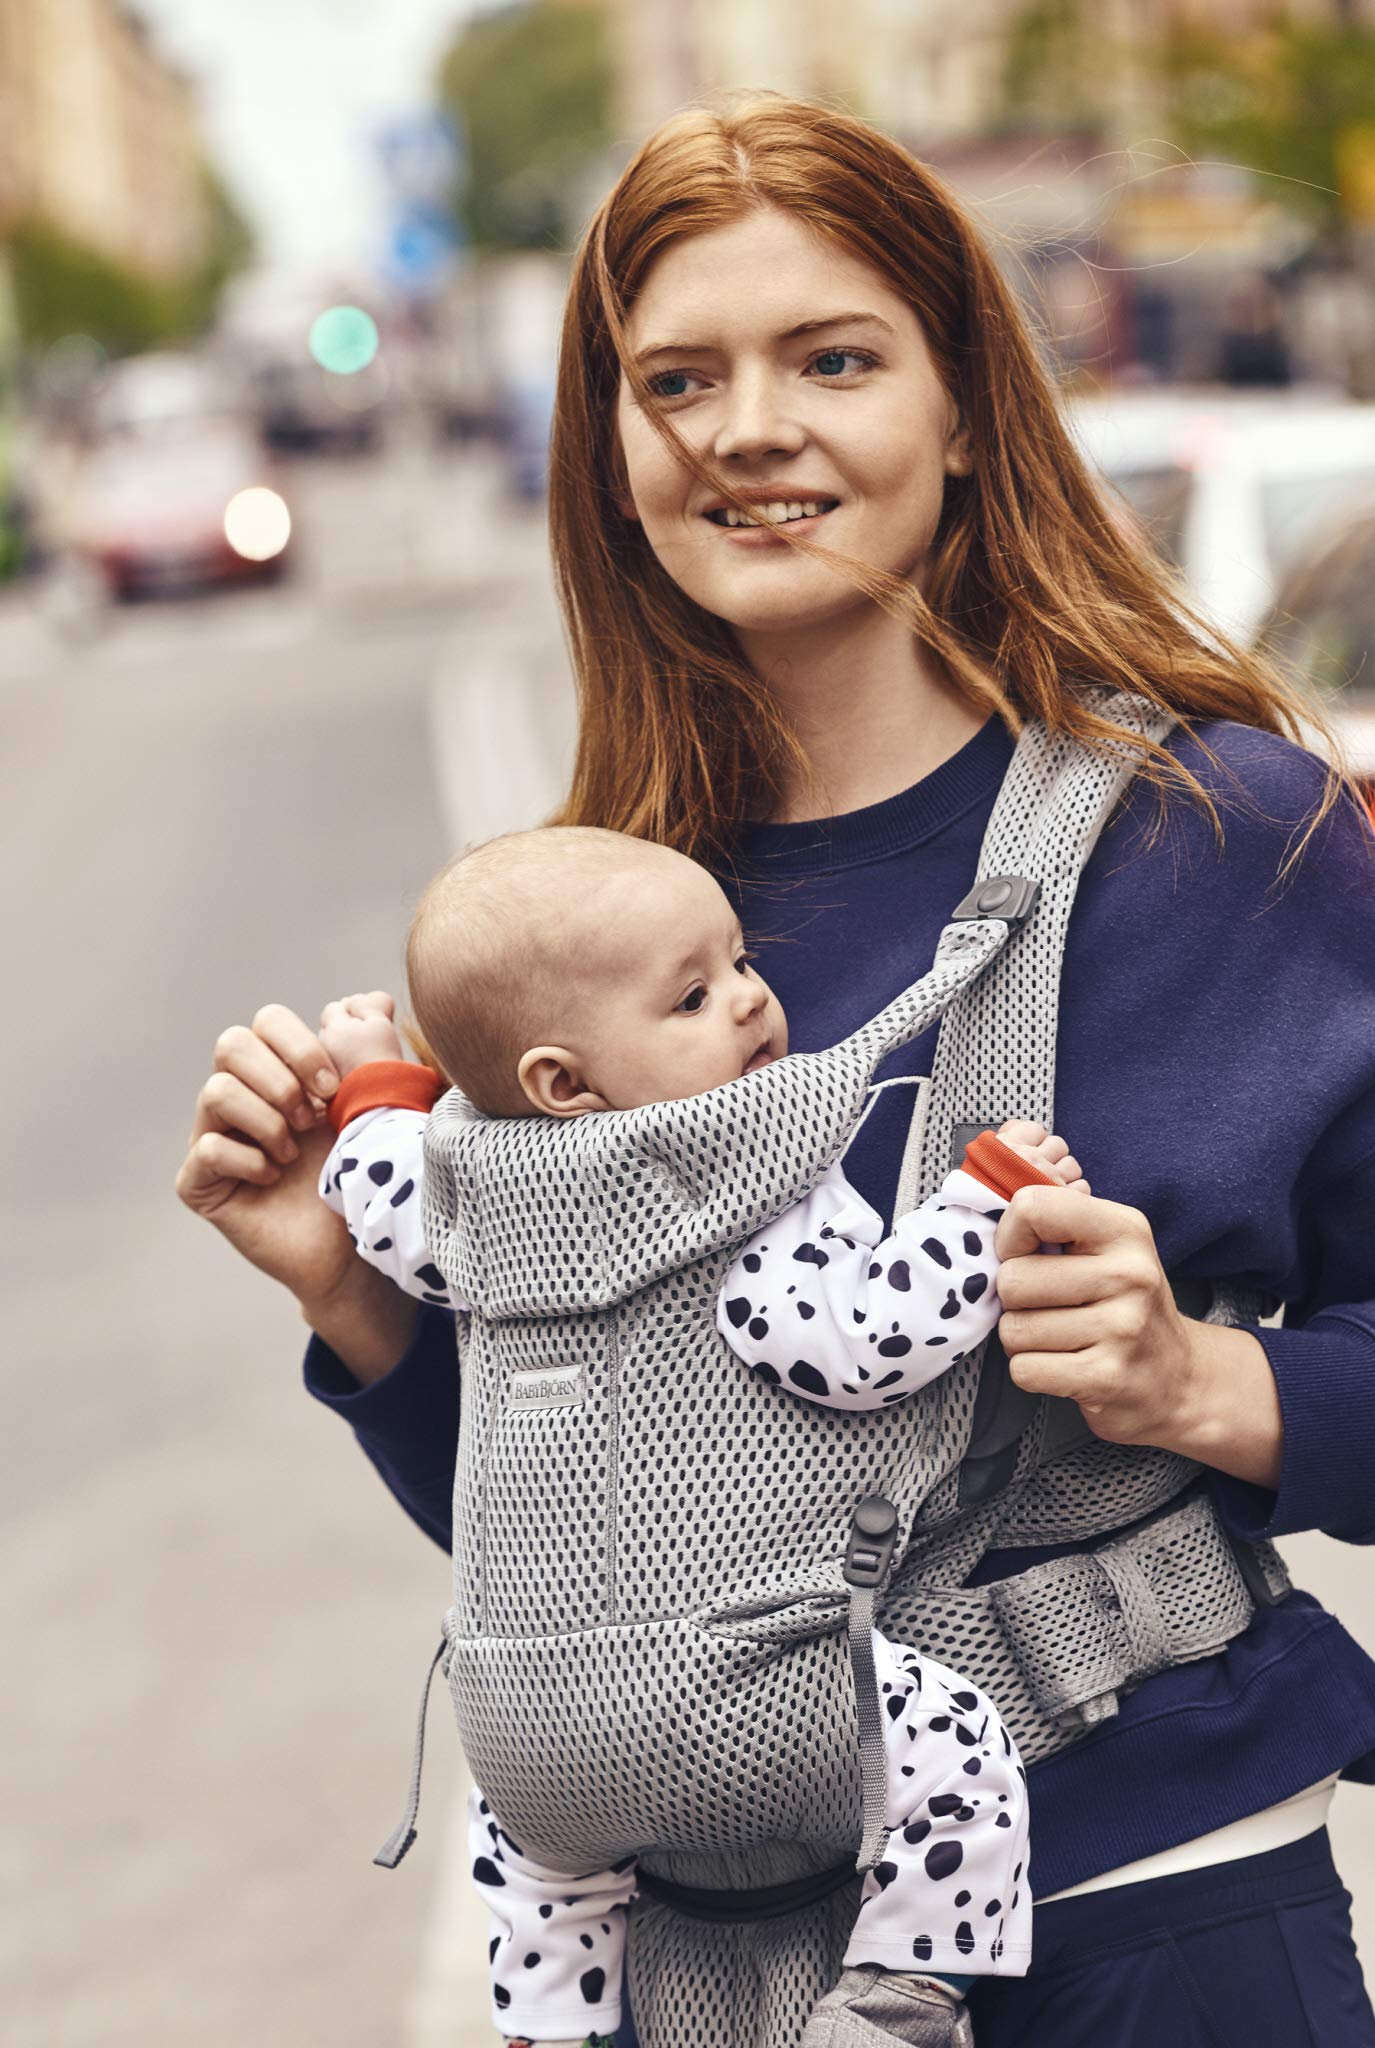 BABYBJÖRN Baby Carrier Move, 3D Mesh, Grey Baby Bjorn Excellent comfort with built-in back support and waist belt Easy to put on and take off Soft and airy design in cool 3D mesh 7